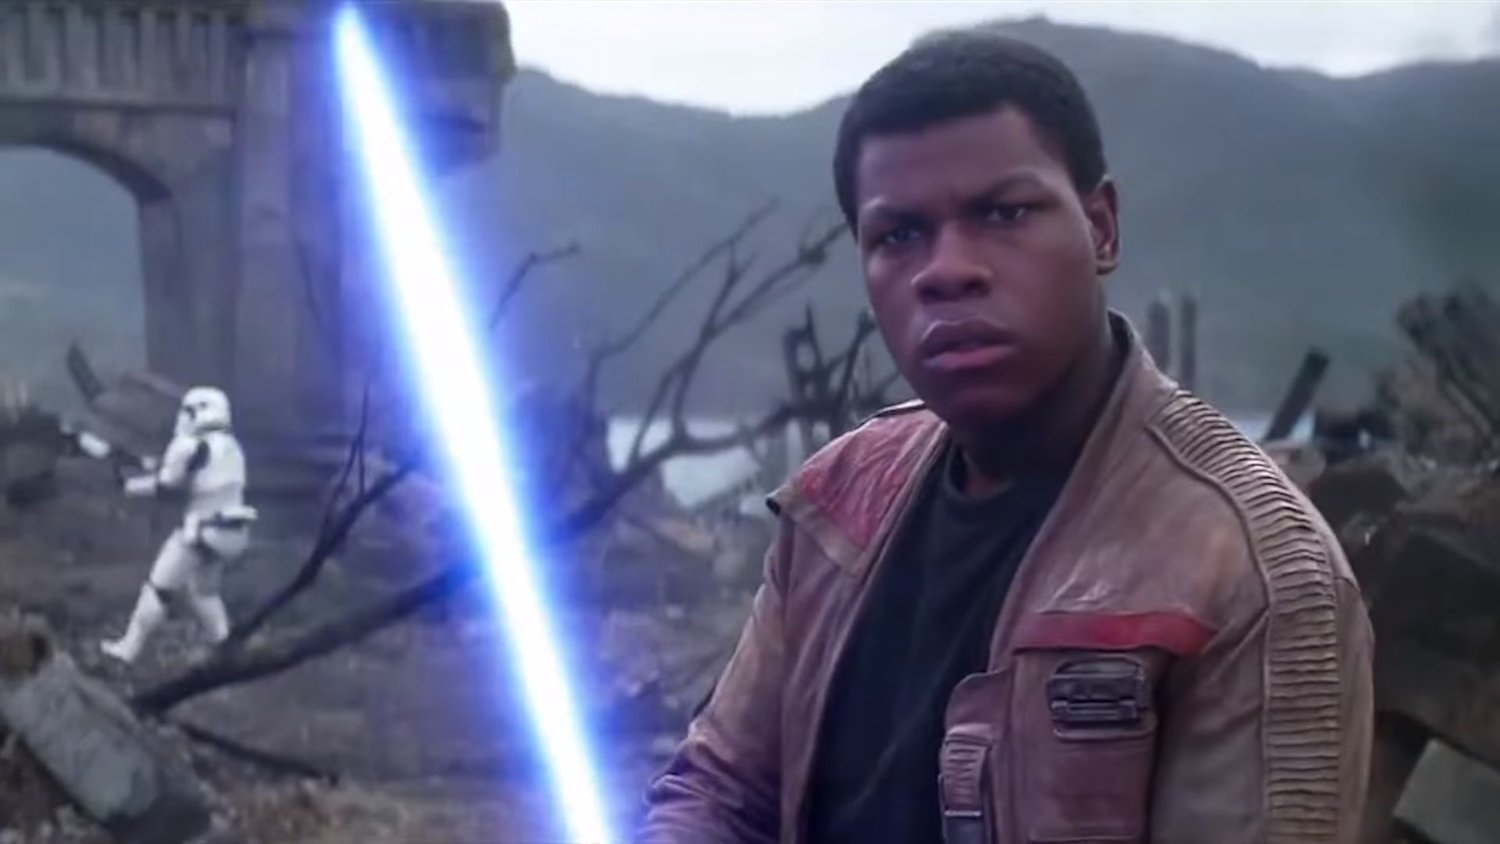 New Rumors About Finn's Role in STAR WARS: THE LAST JEDI